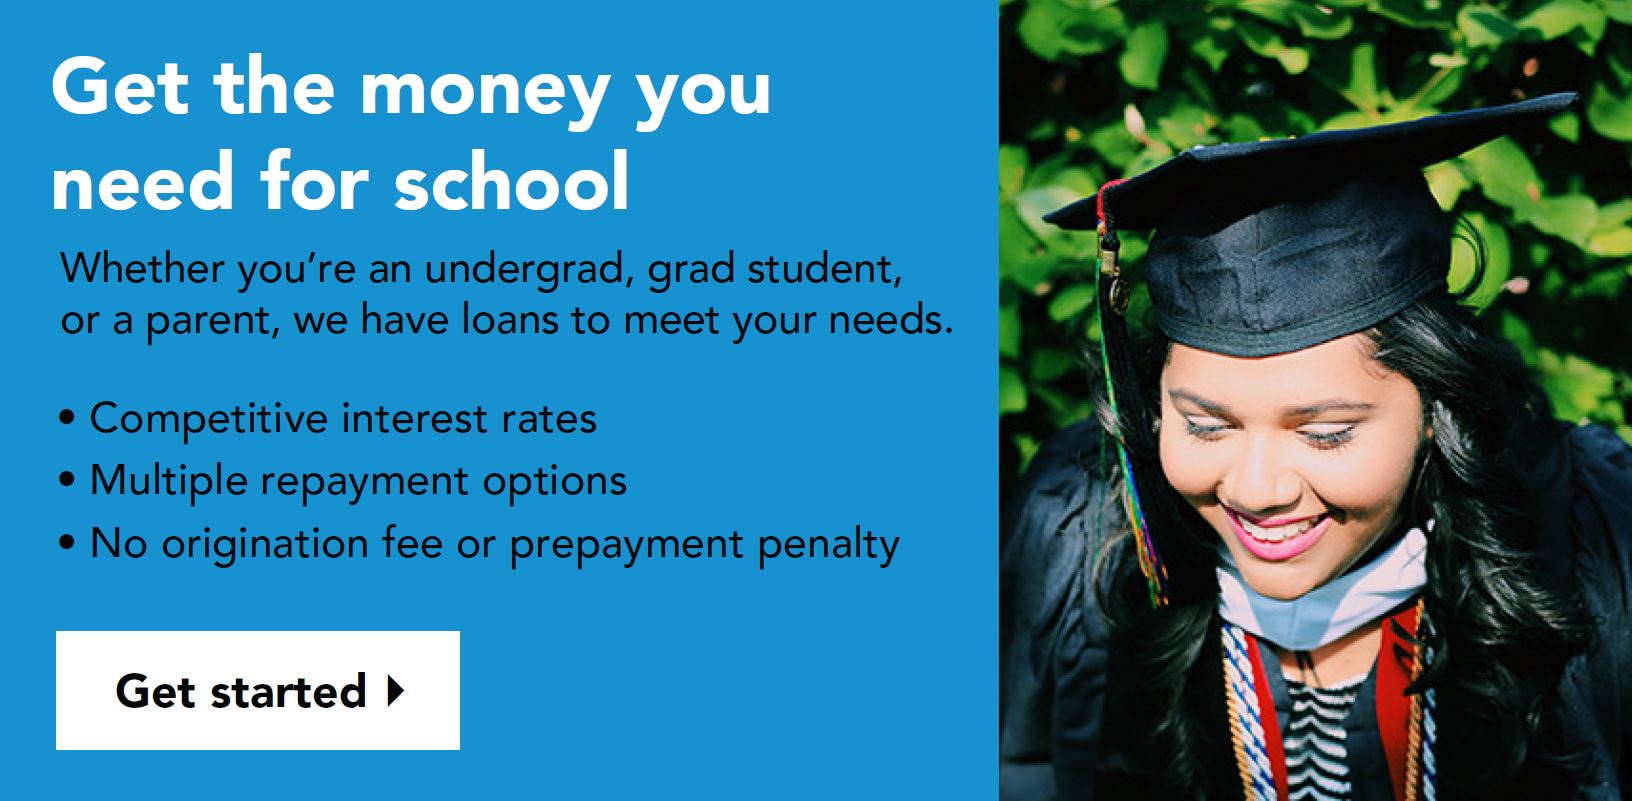 Get the money you need for school. Get started.